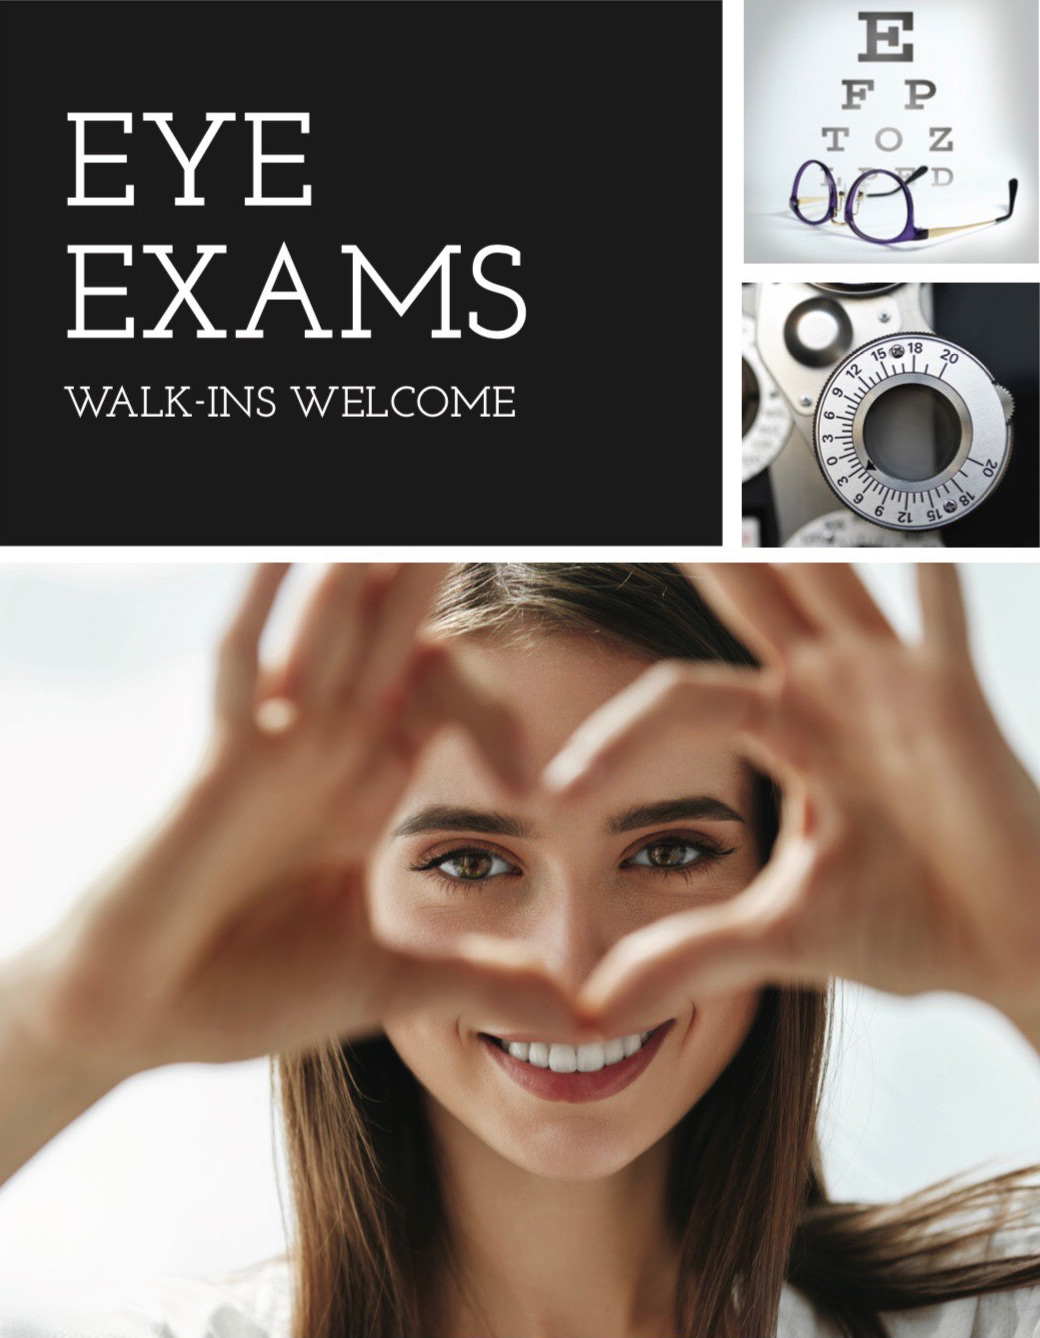 Eye Exams - Walk-ins Welcome